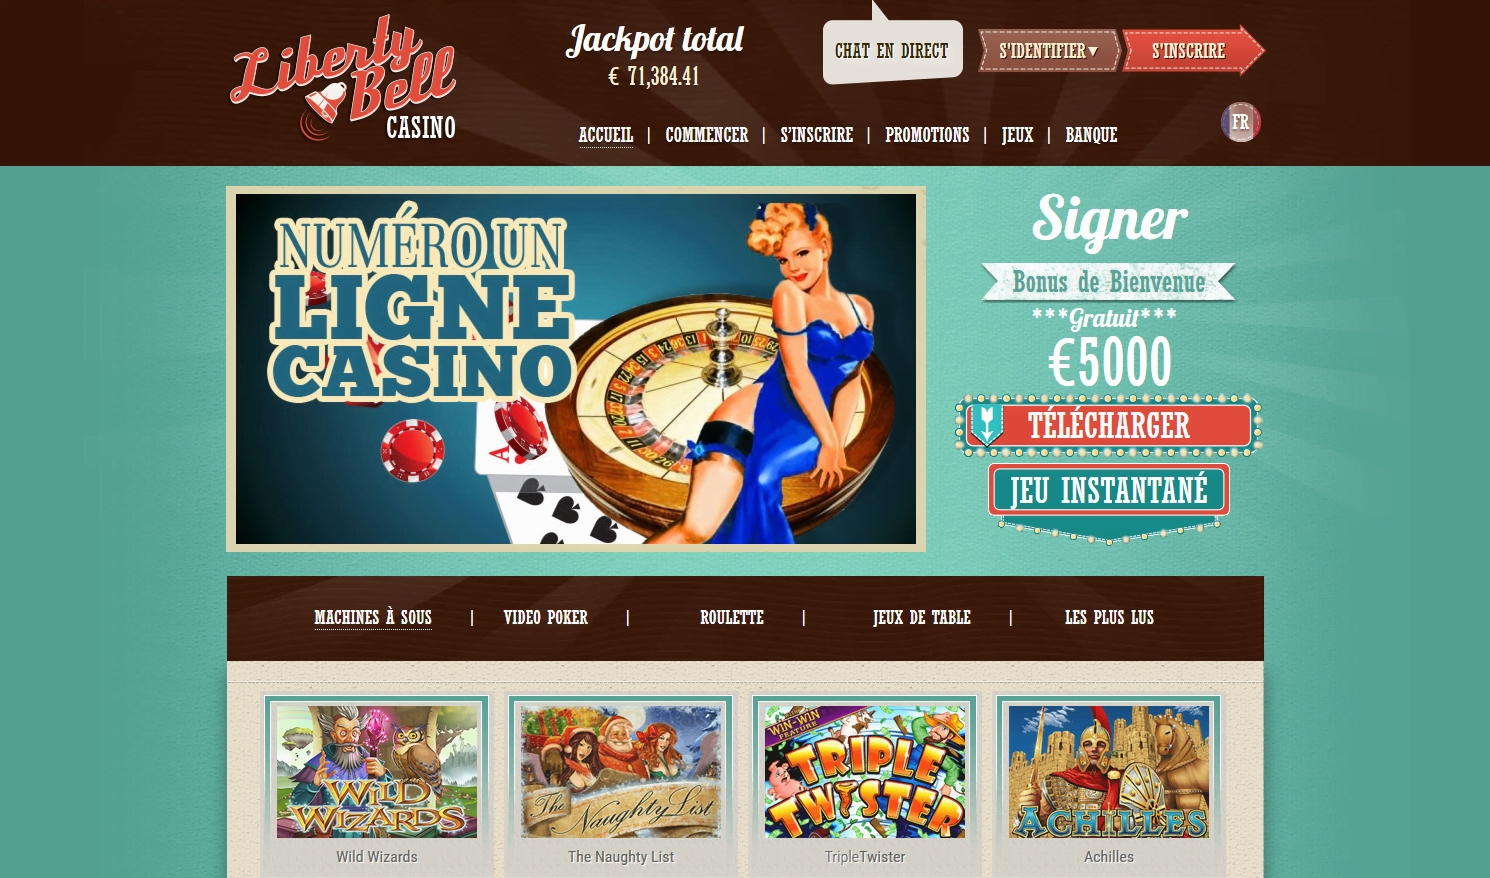 EURO 4565 no deposit casino bonus at Spinrider